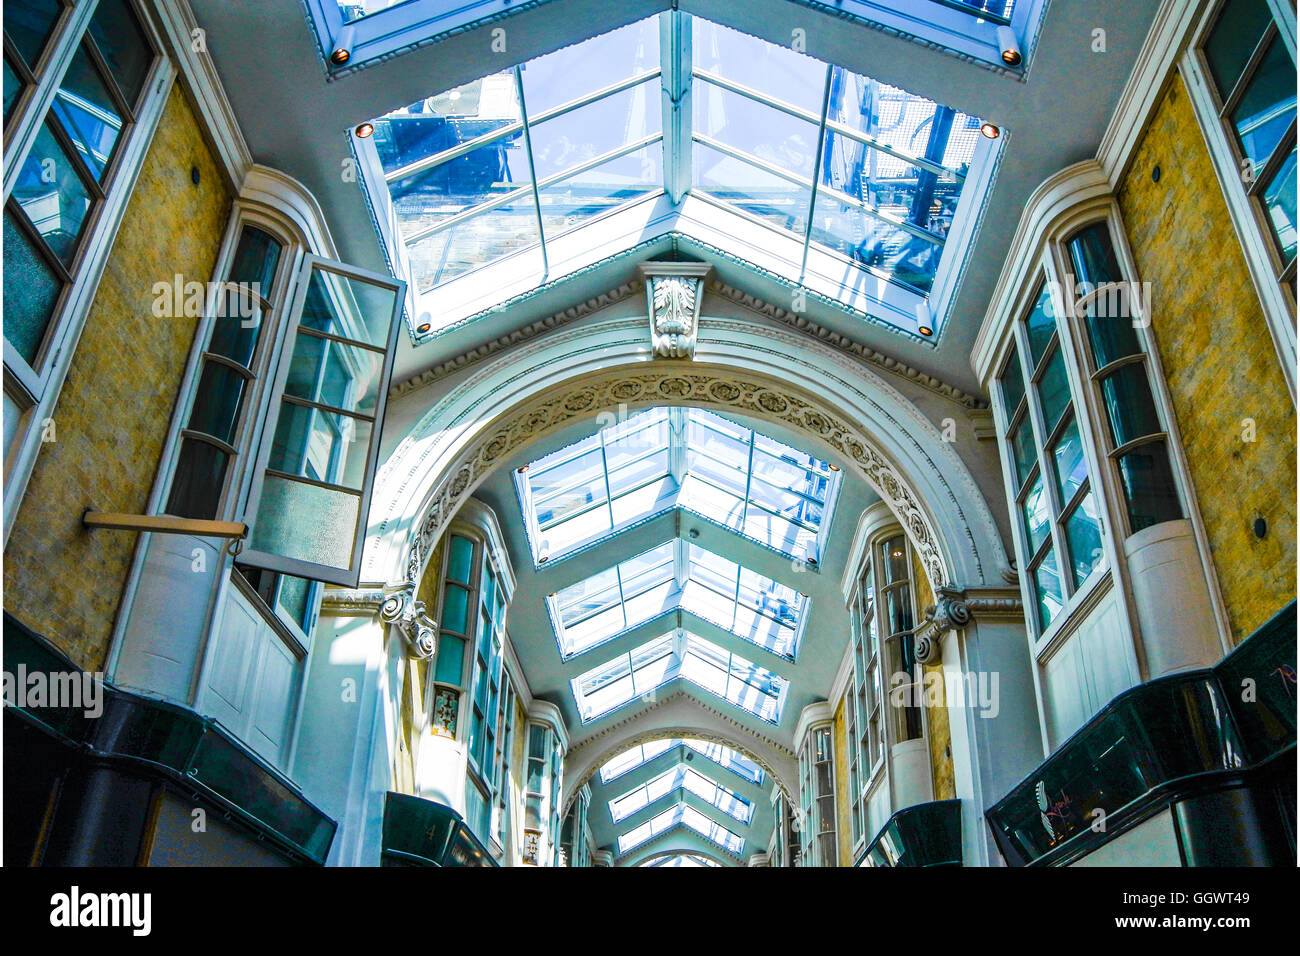 The Burlington Arcade in the exclusive Mayfair area of London's West End, was the world's first shopping - Stock Image